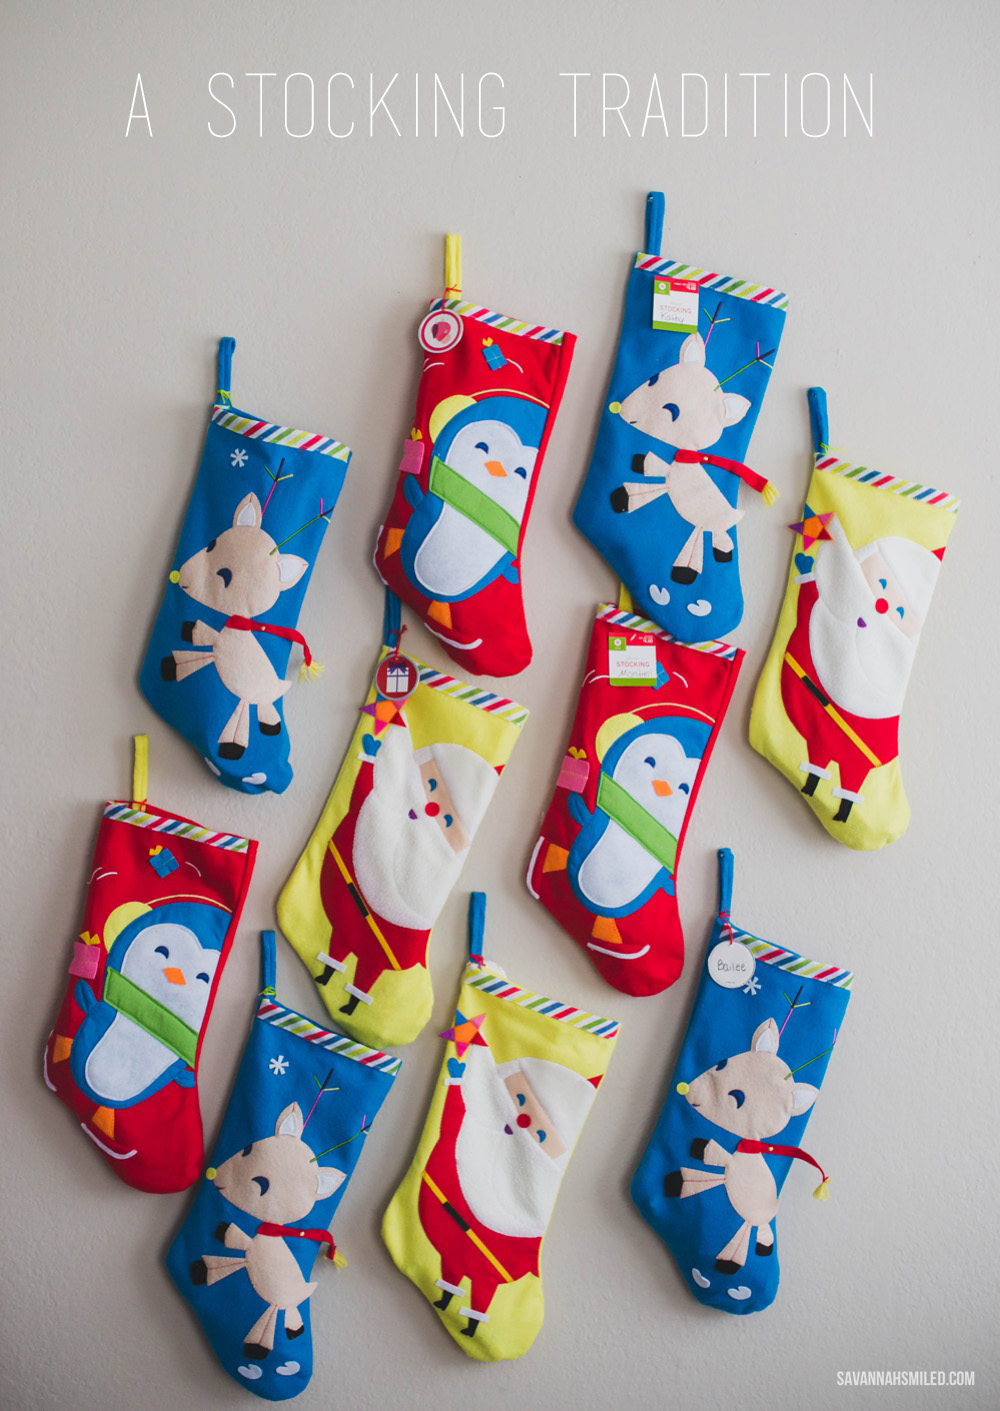 christmas-stockings-extended-family-tradition-1%2Bcopy.jpg